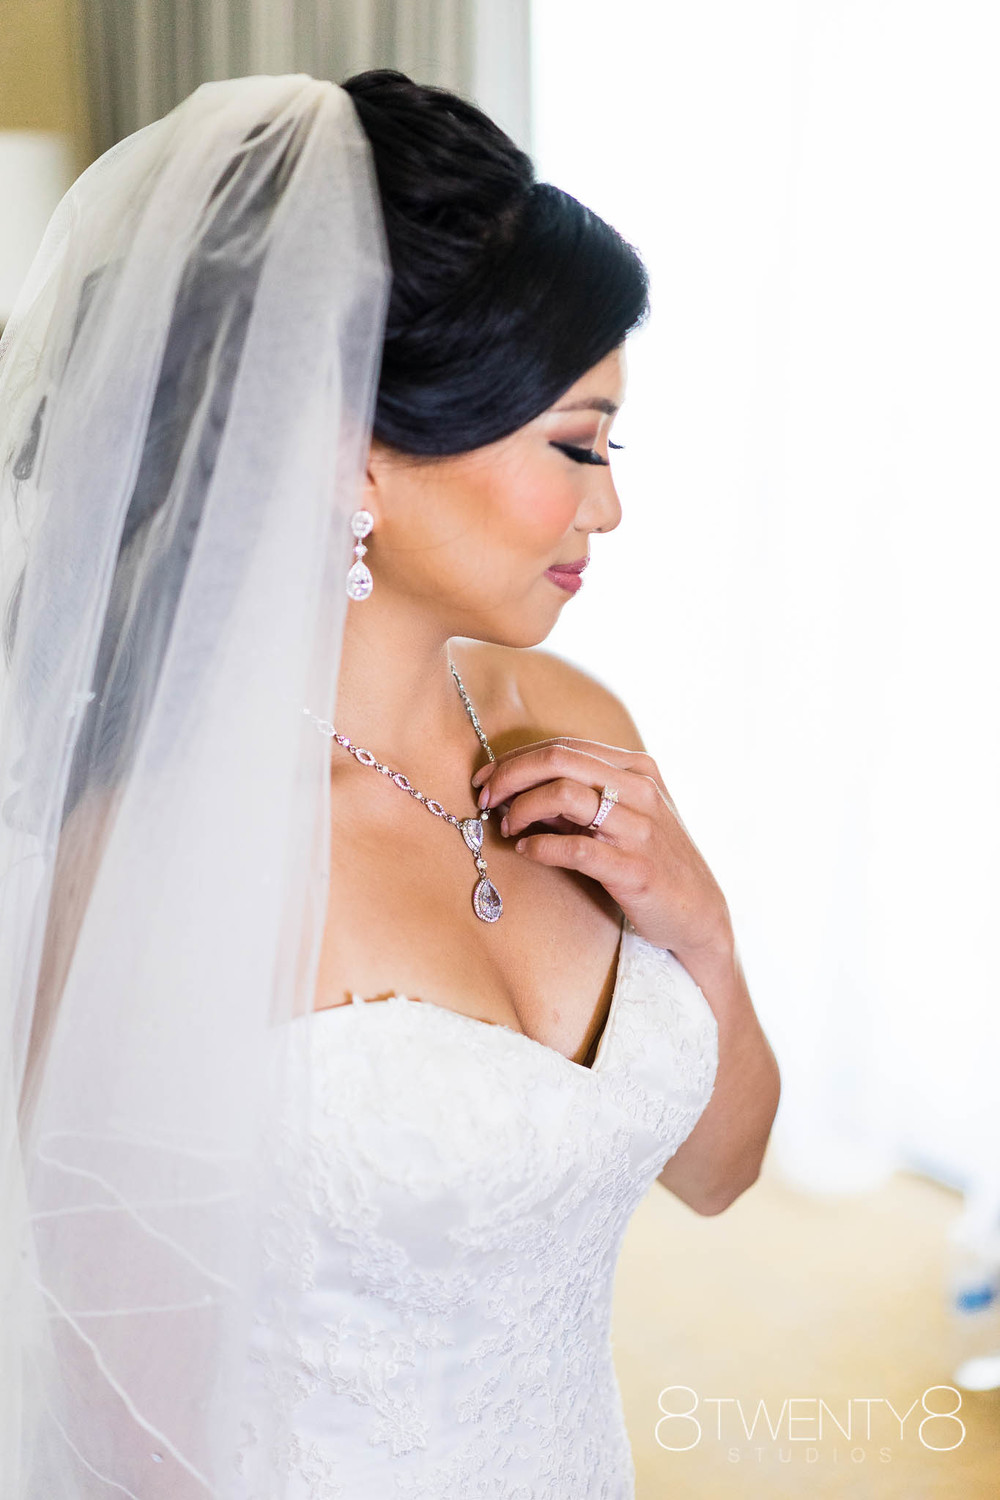 0097-150829-gina-jeff-wedding-8twenty8-Studios.jpg